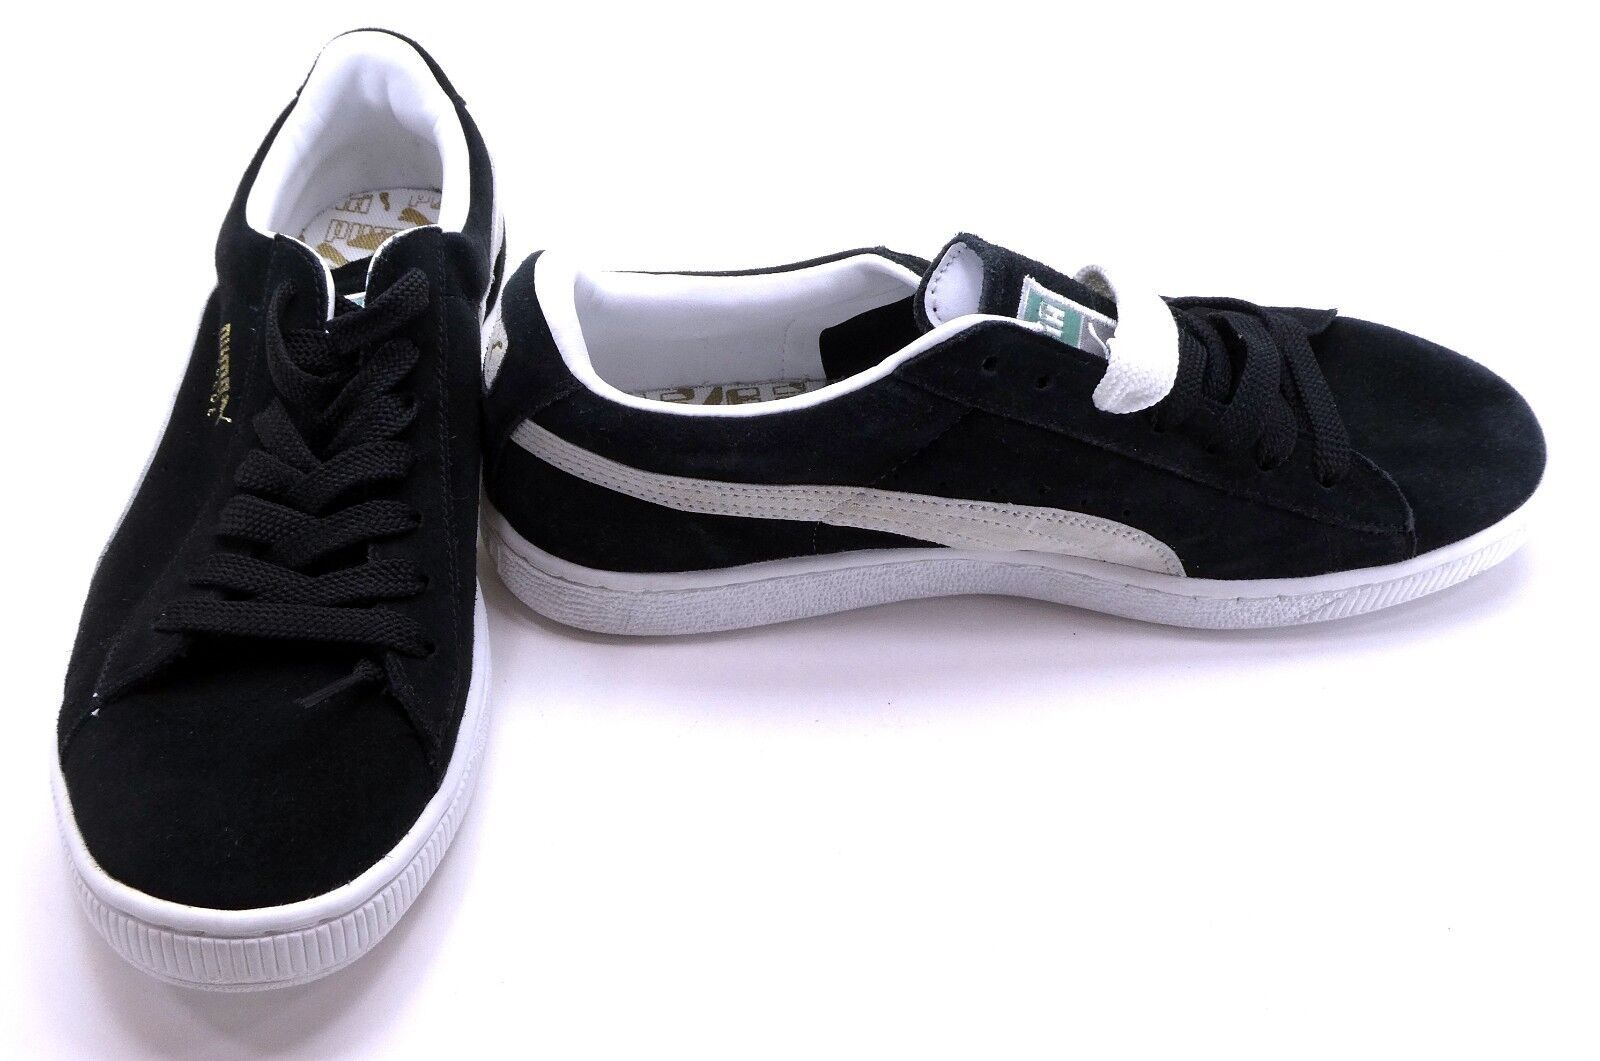 Puma Shoes Suede Athletic Black/Cream/White Sneakers Size 8.5